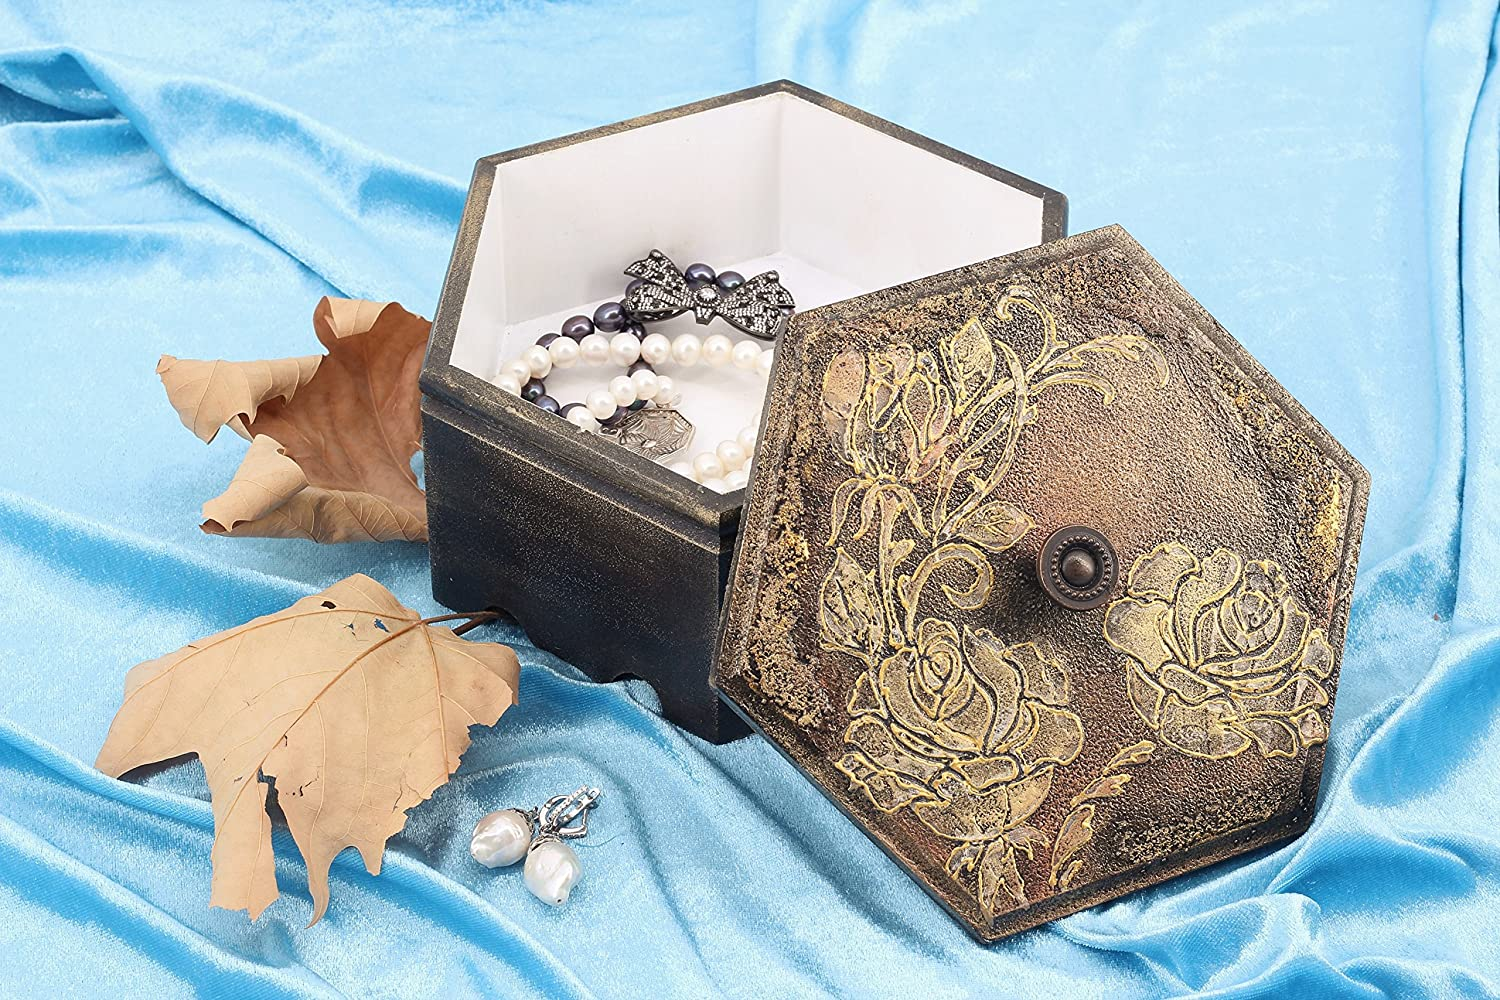 Anatolianway Hexagon shaped jewelry box painted with floral golden theme (JewelryBox1007)